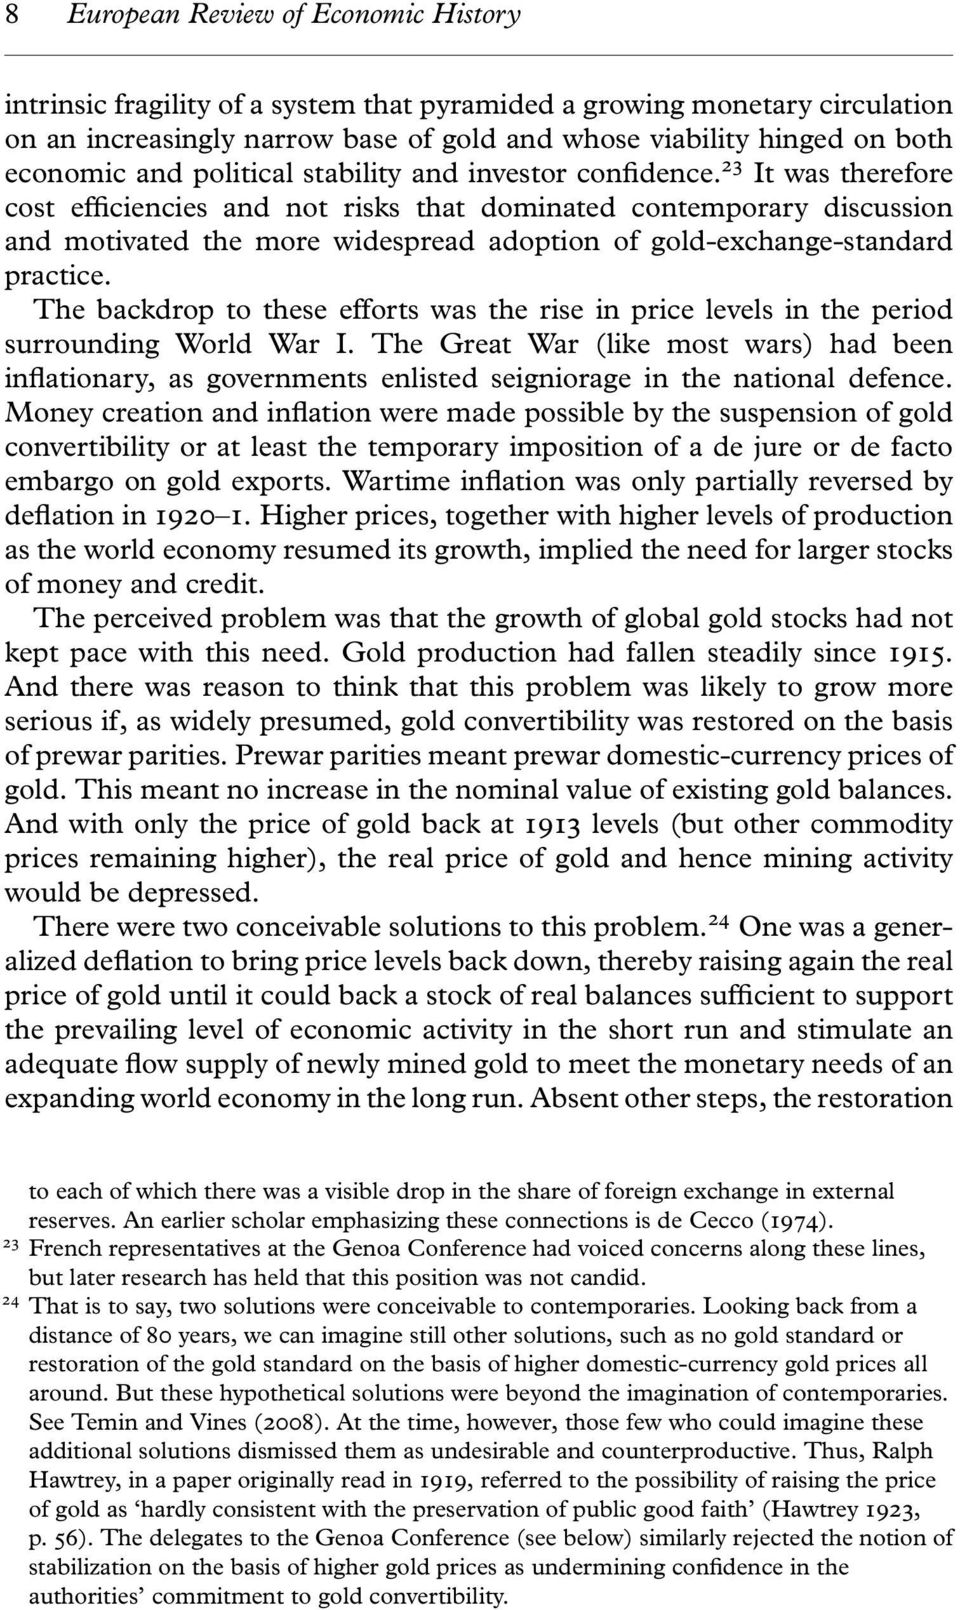 23 It was therefore cost efficiencies and not risks that dominated contemporary discussion and motivated the more widespread adoption of gold-exchange-standard practice.